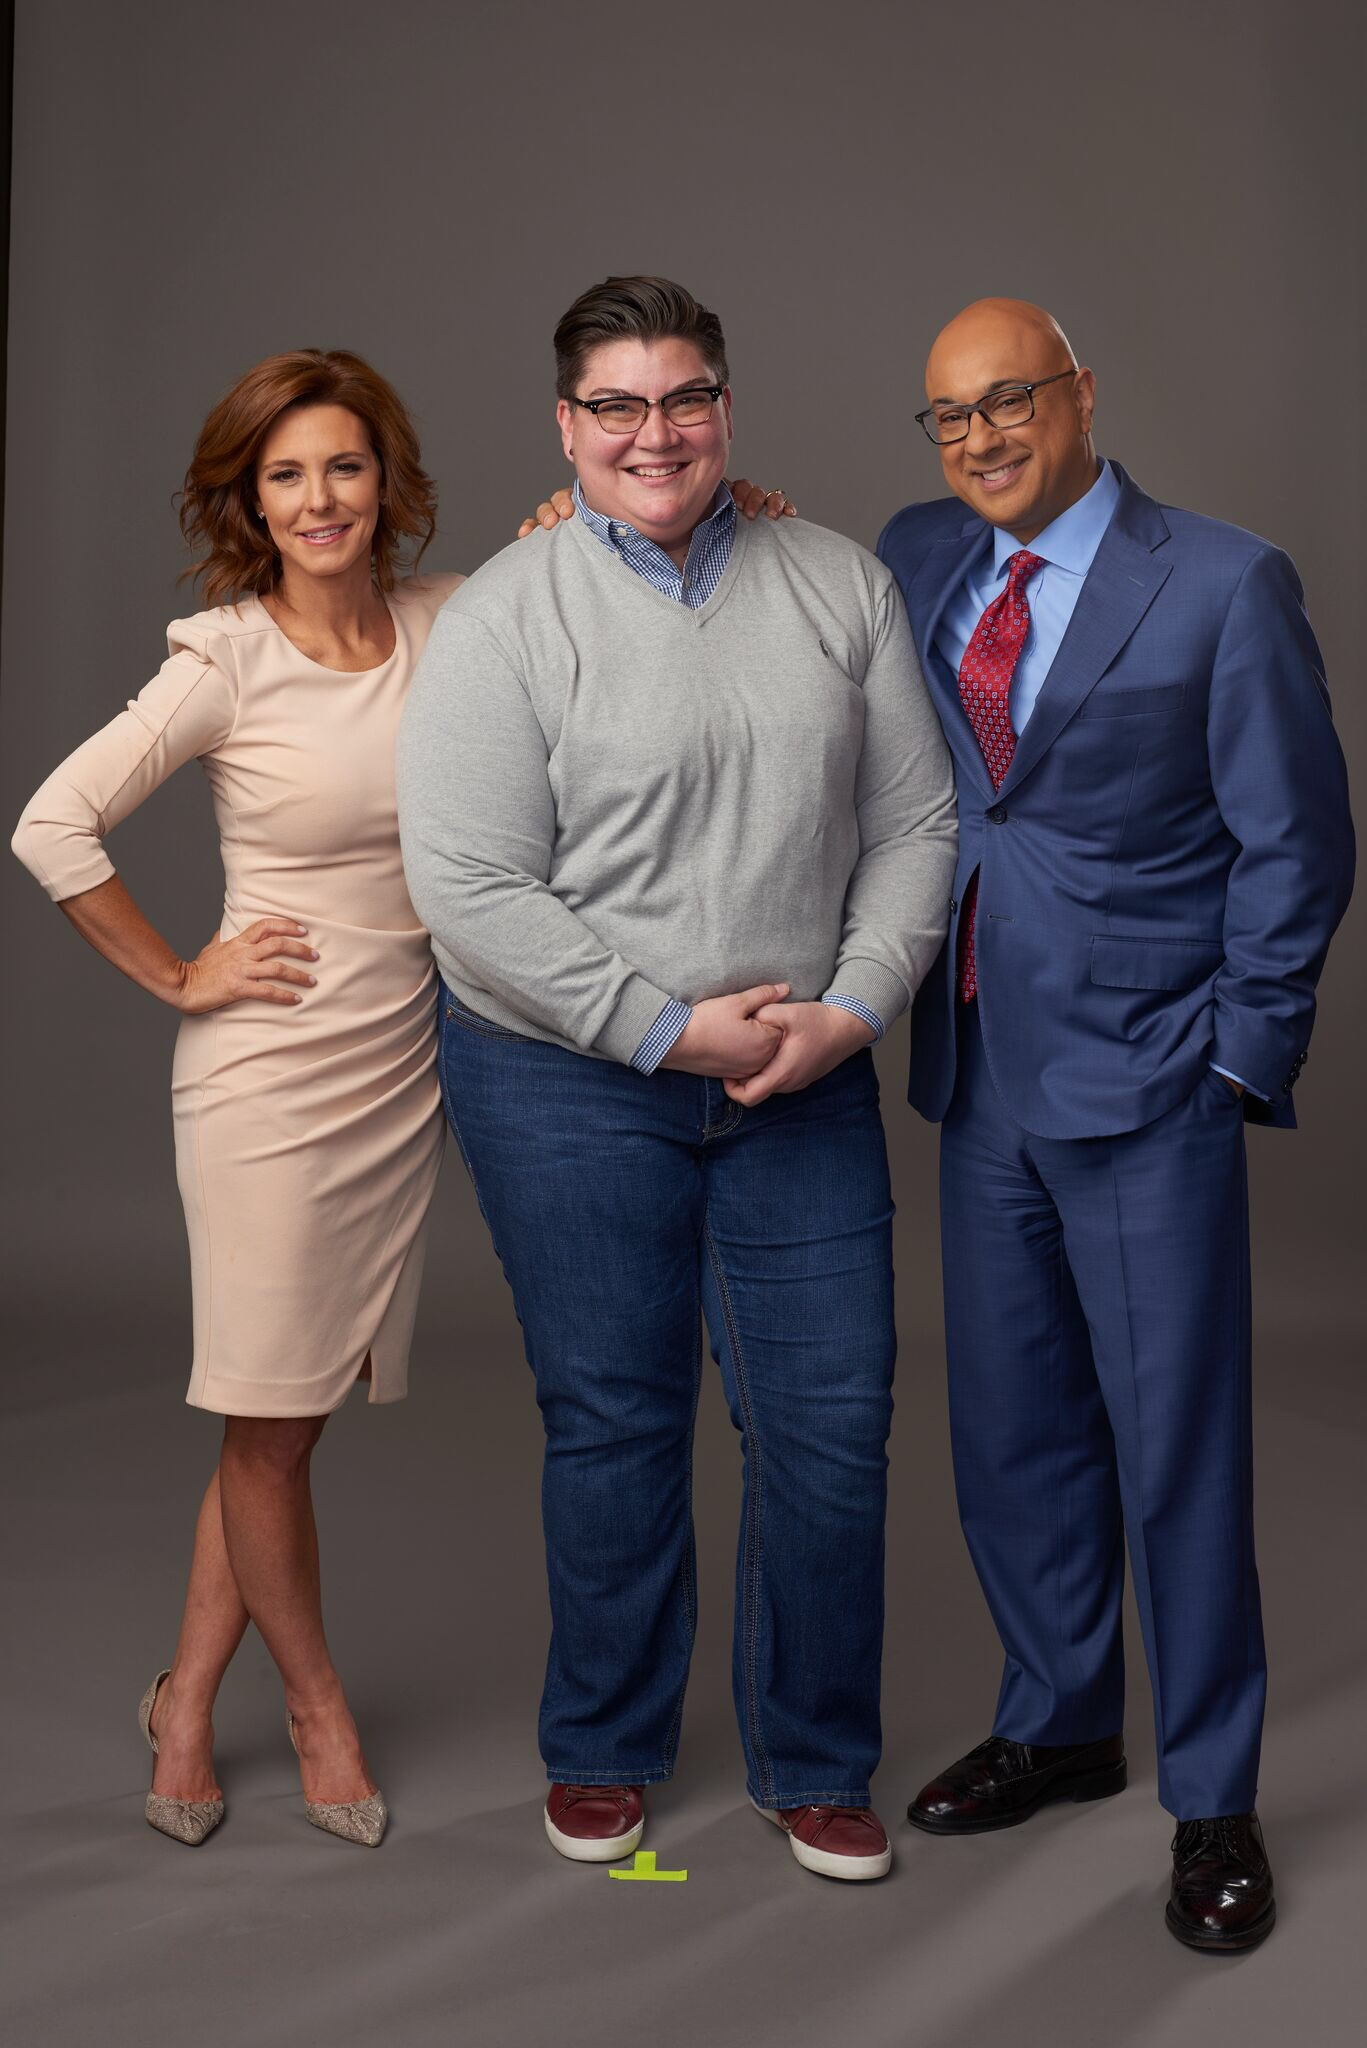 Ali Velshi On Twitter Quot This Is The Woman Who Creates The